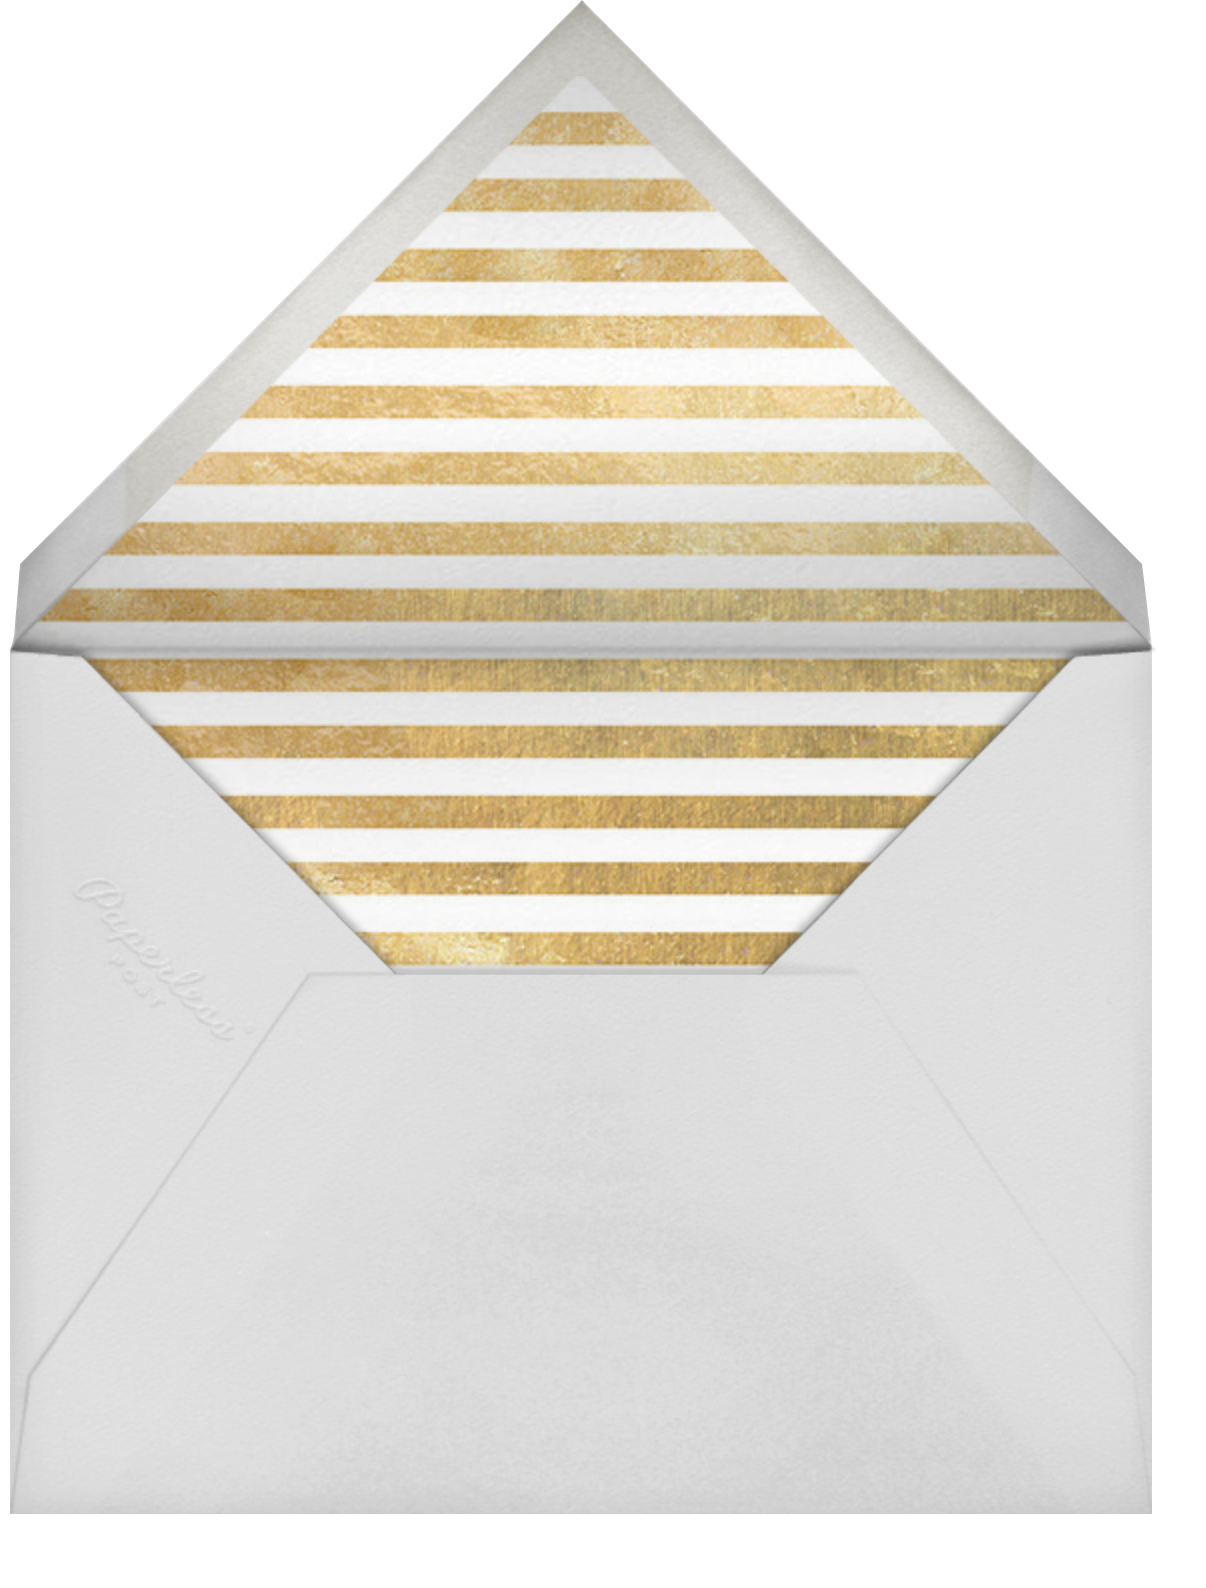 Come Celebrate - Ivory/Gold - kate spade new york - Holiday save the dates - envelope back